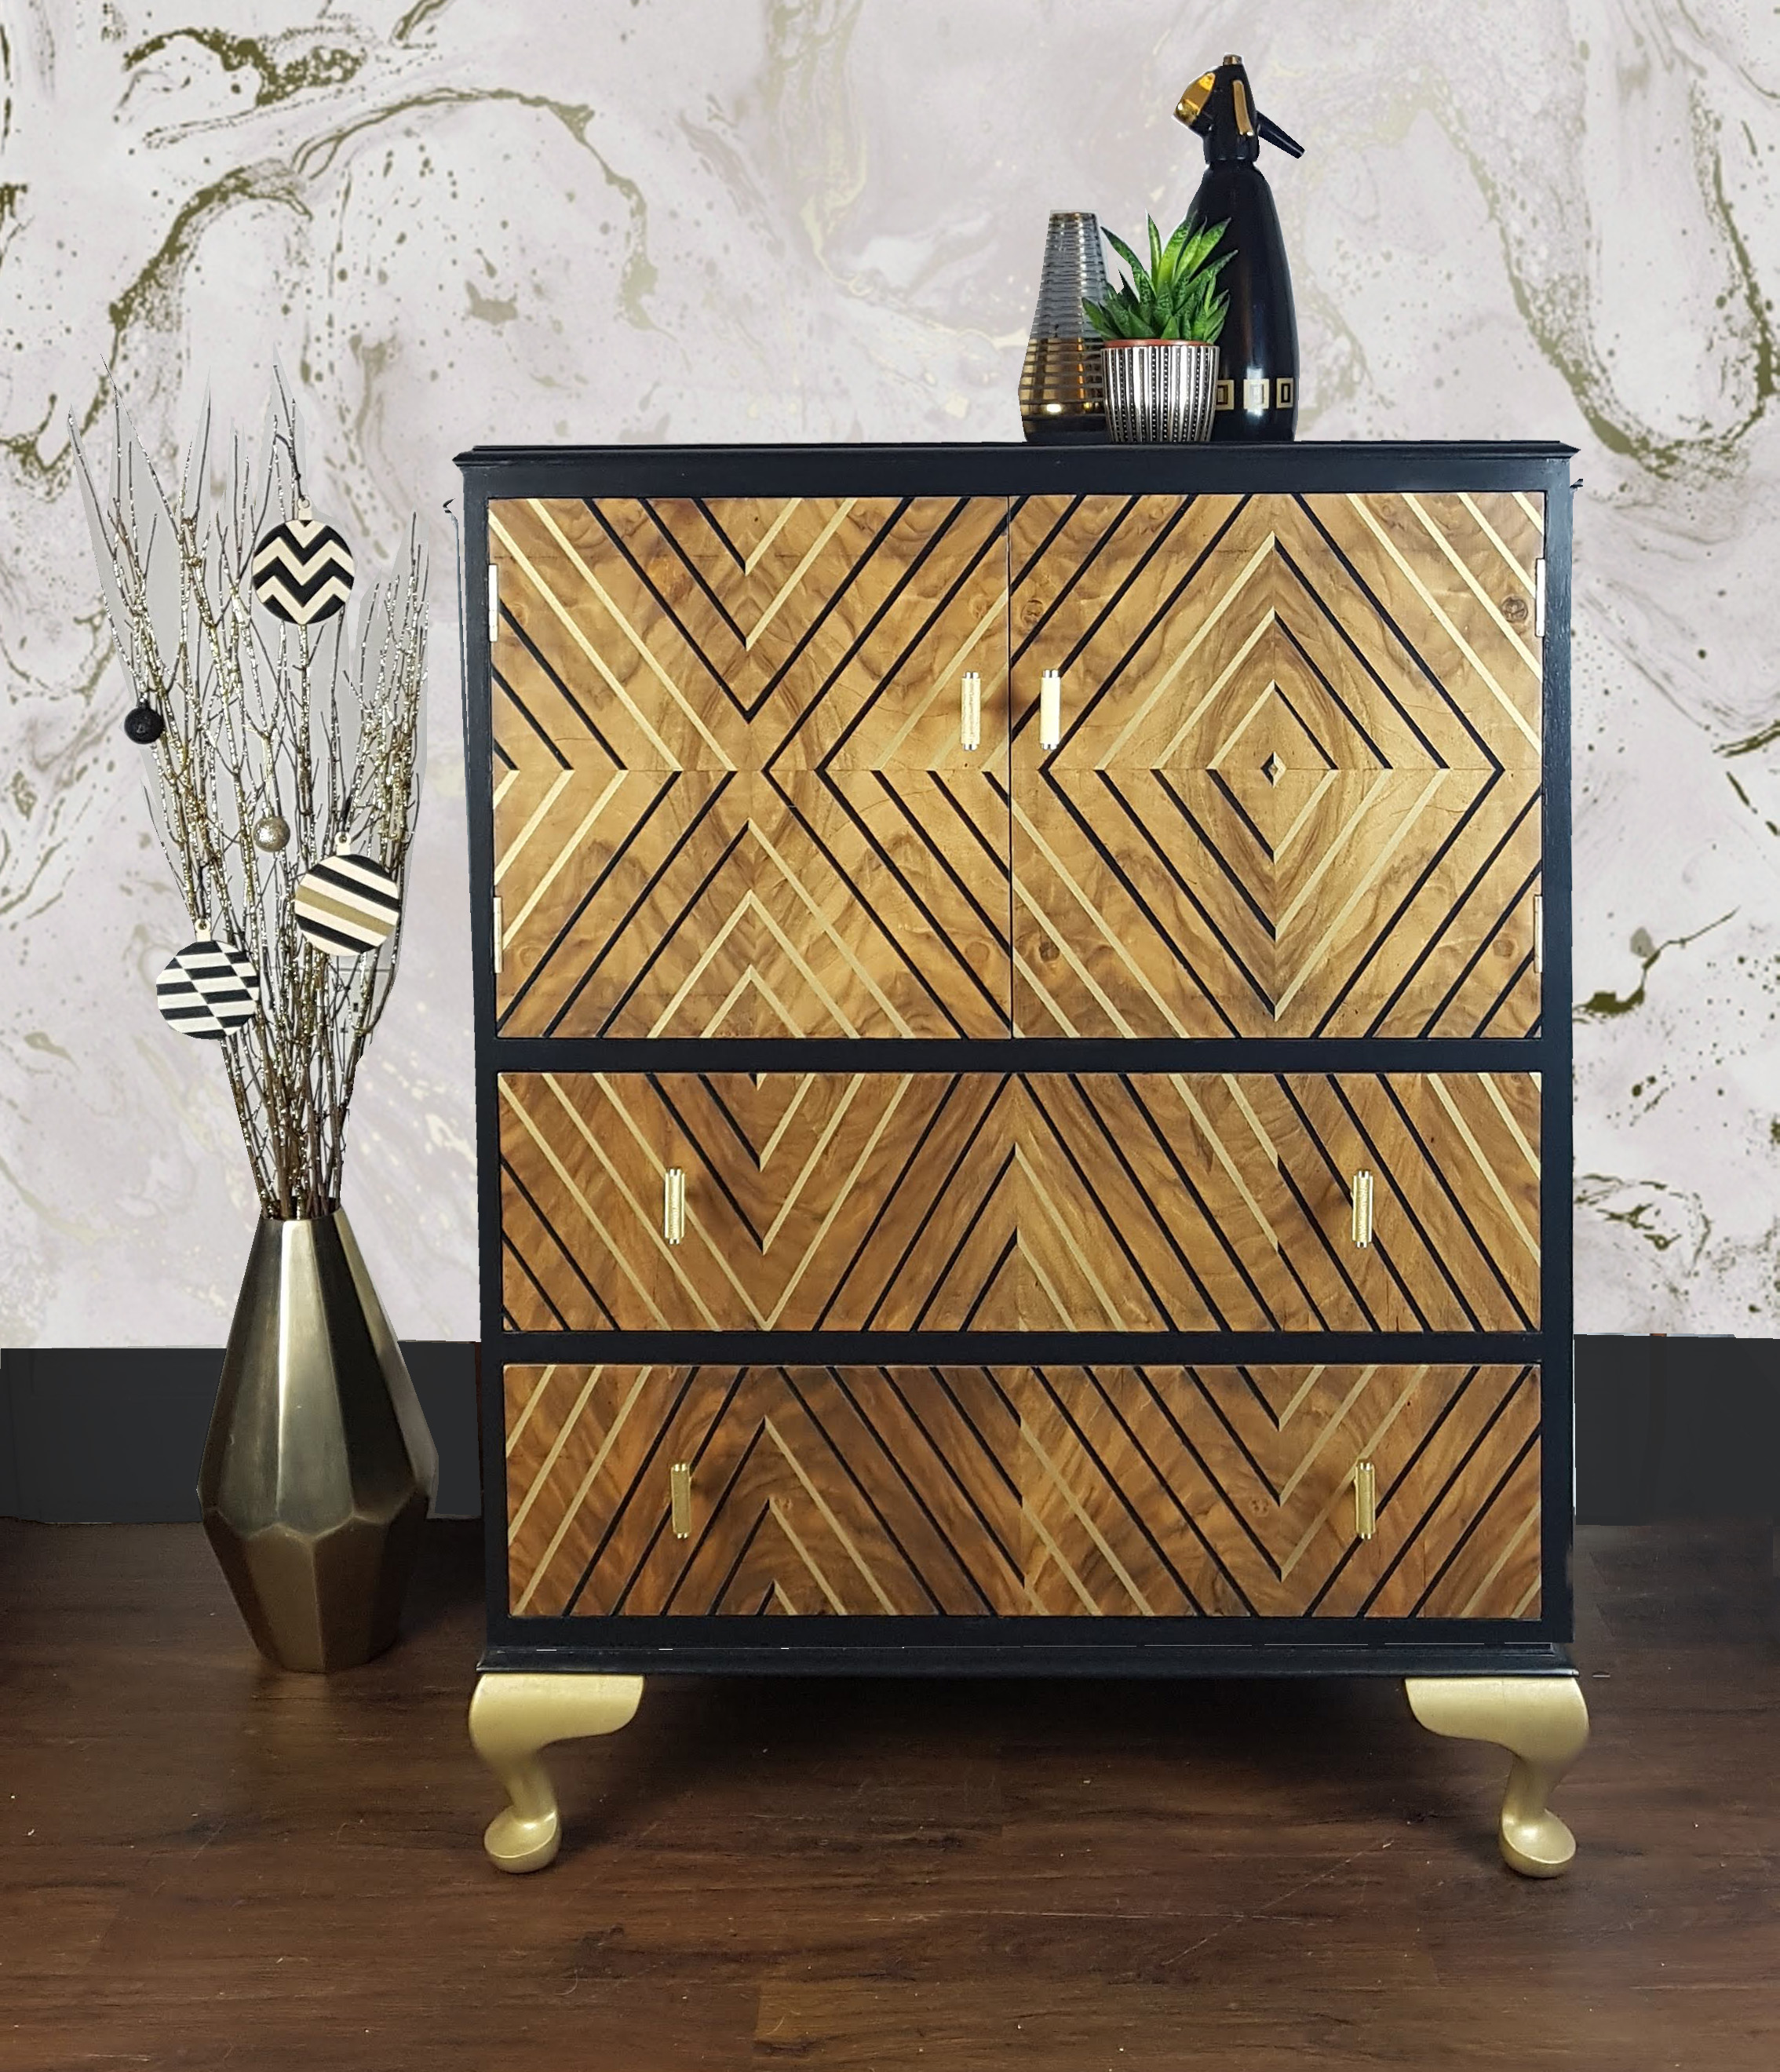 The House of Upcycling: Done Up North Refinished Vintage Drinks Cabinet with Black & Gold Surface Design